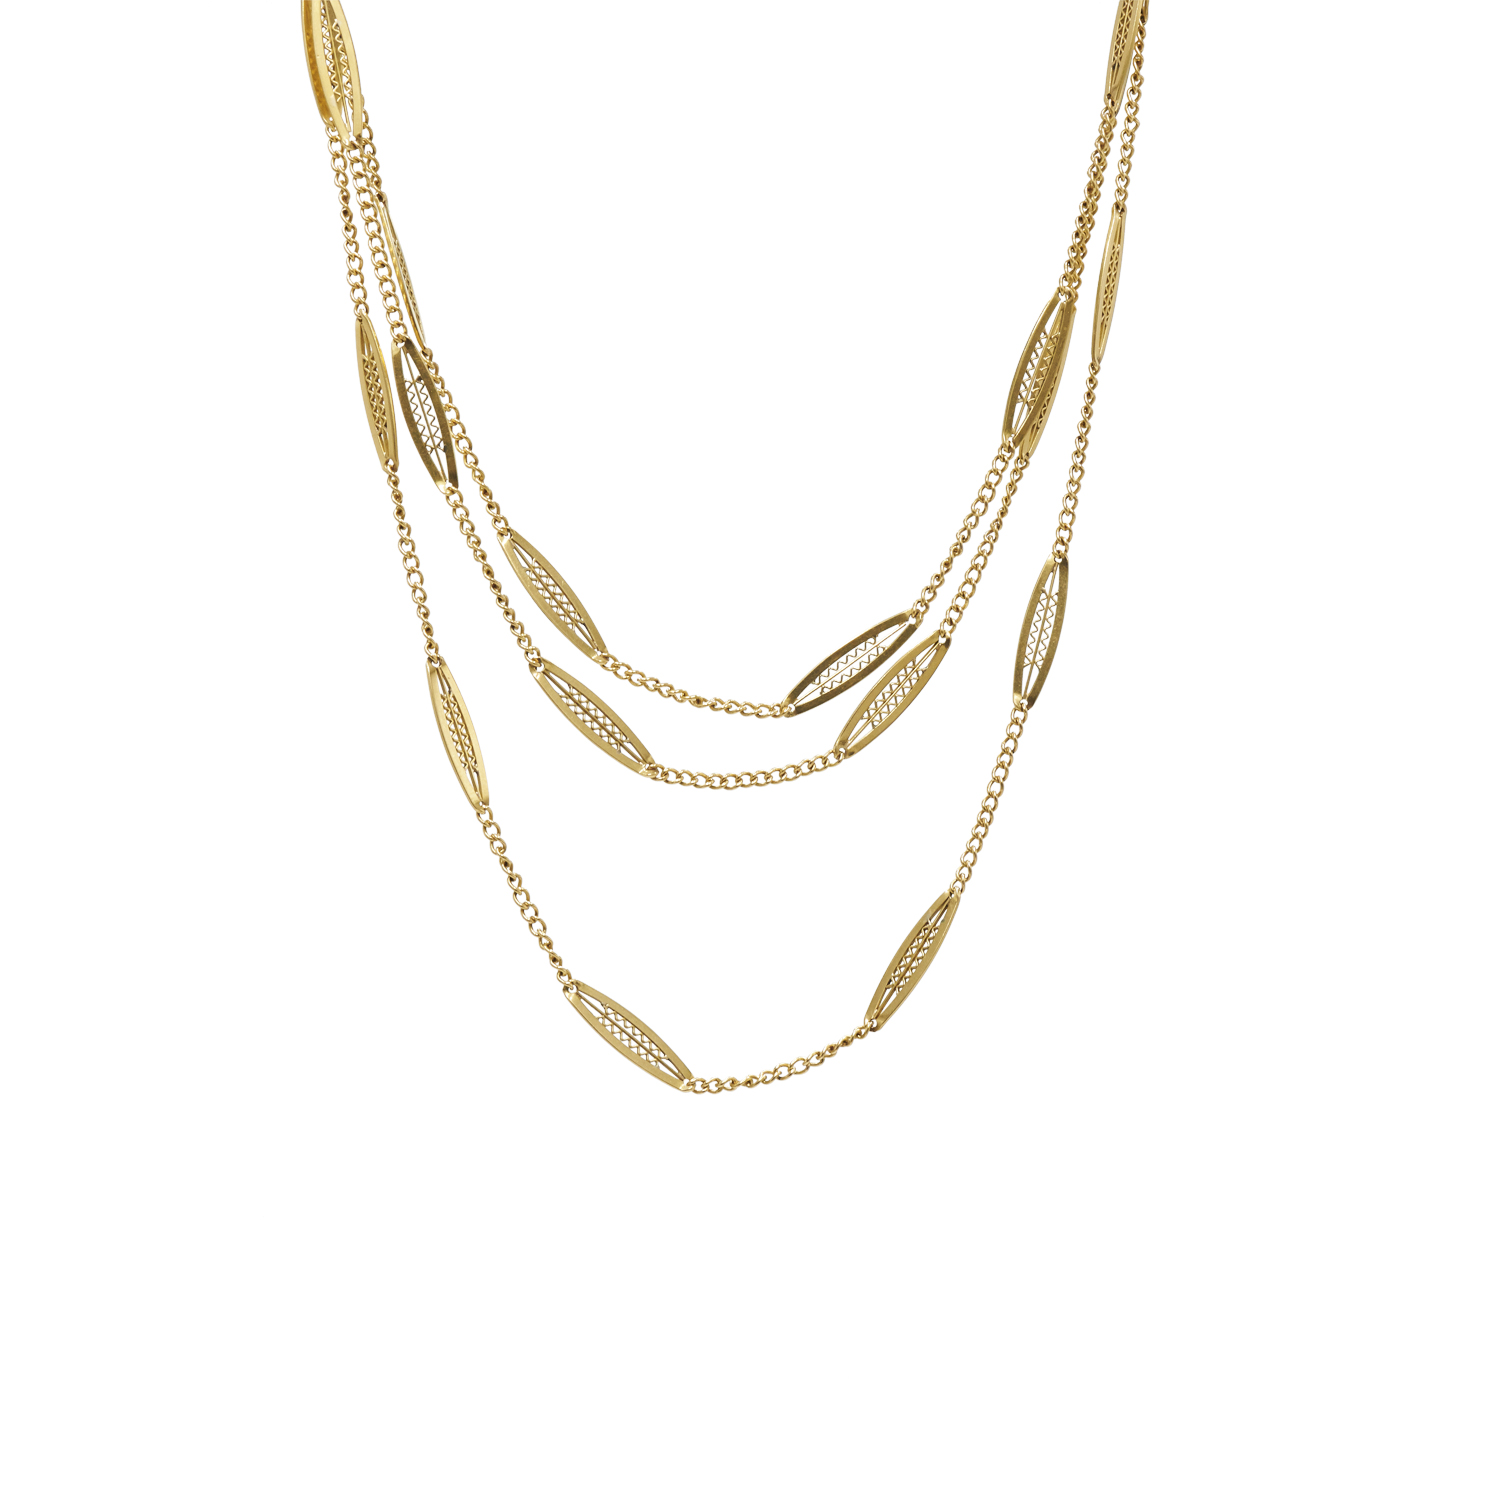 Antique 18K Yellow Gold Fancy Link Long Chain Style N-36613-FL-0-0